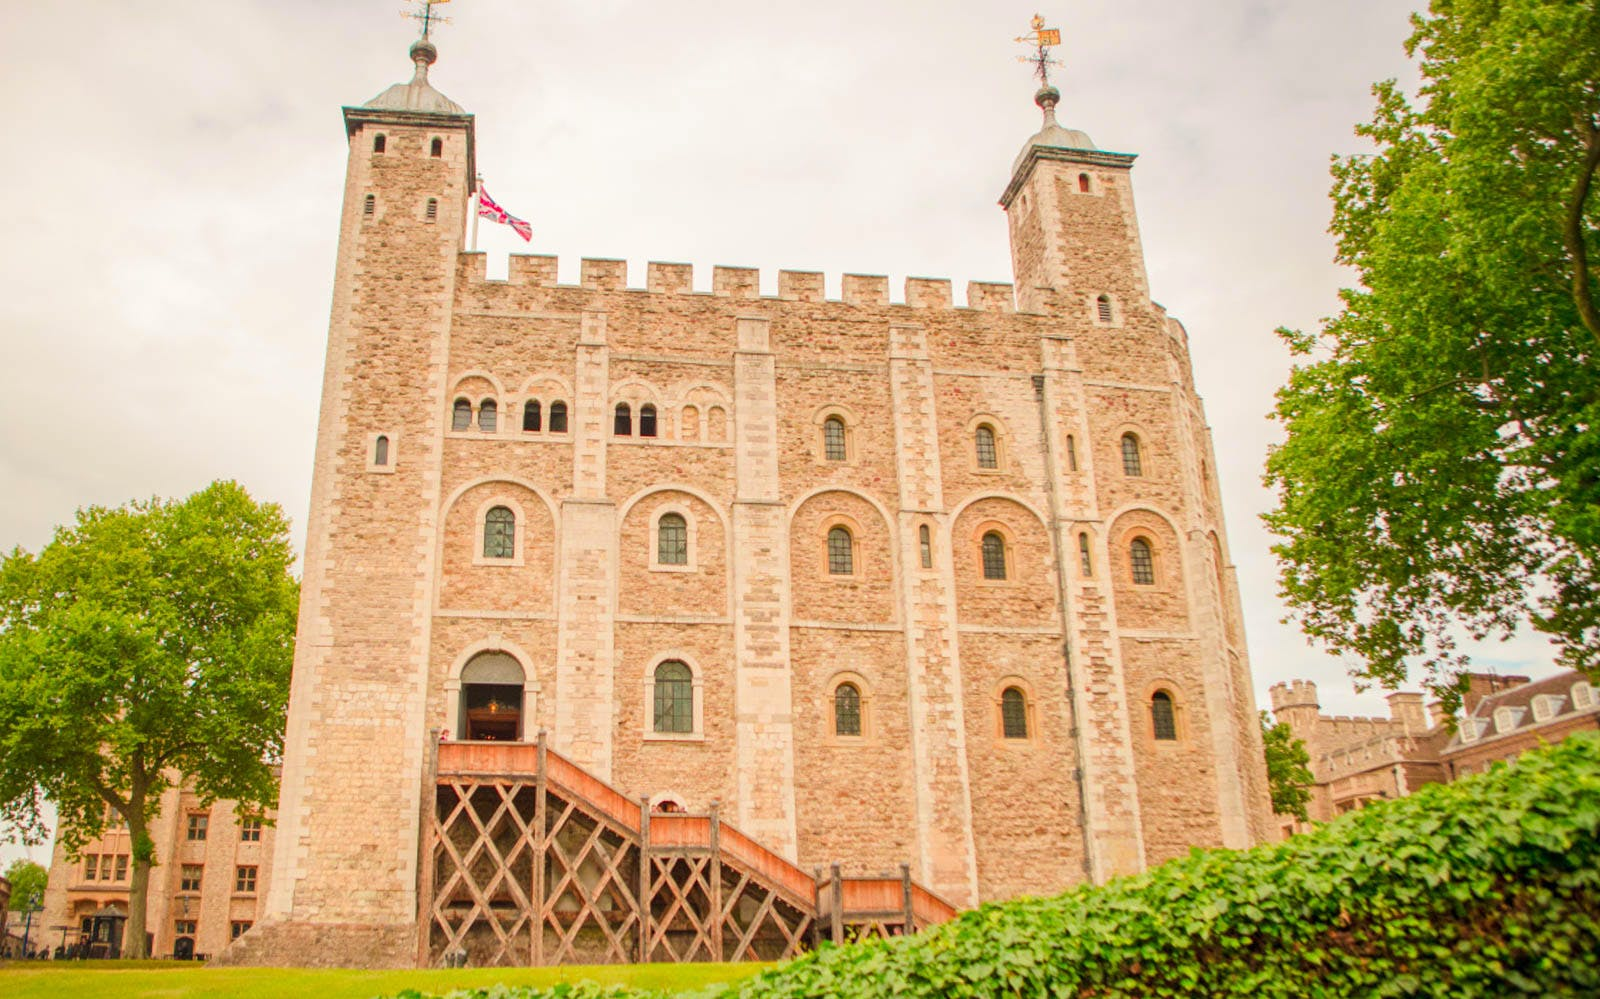 Tower of London Entrances Simplified – Know The Best Way To Enter The Tower of London